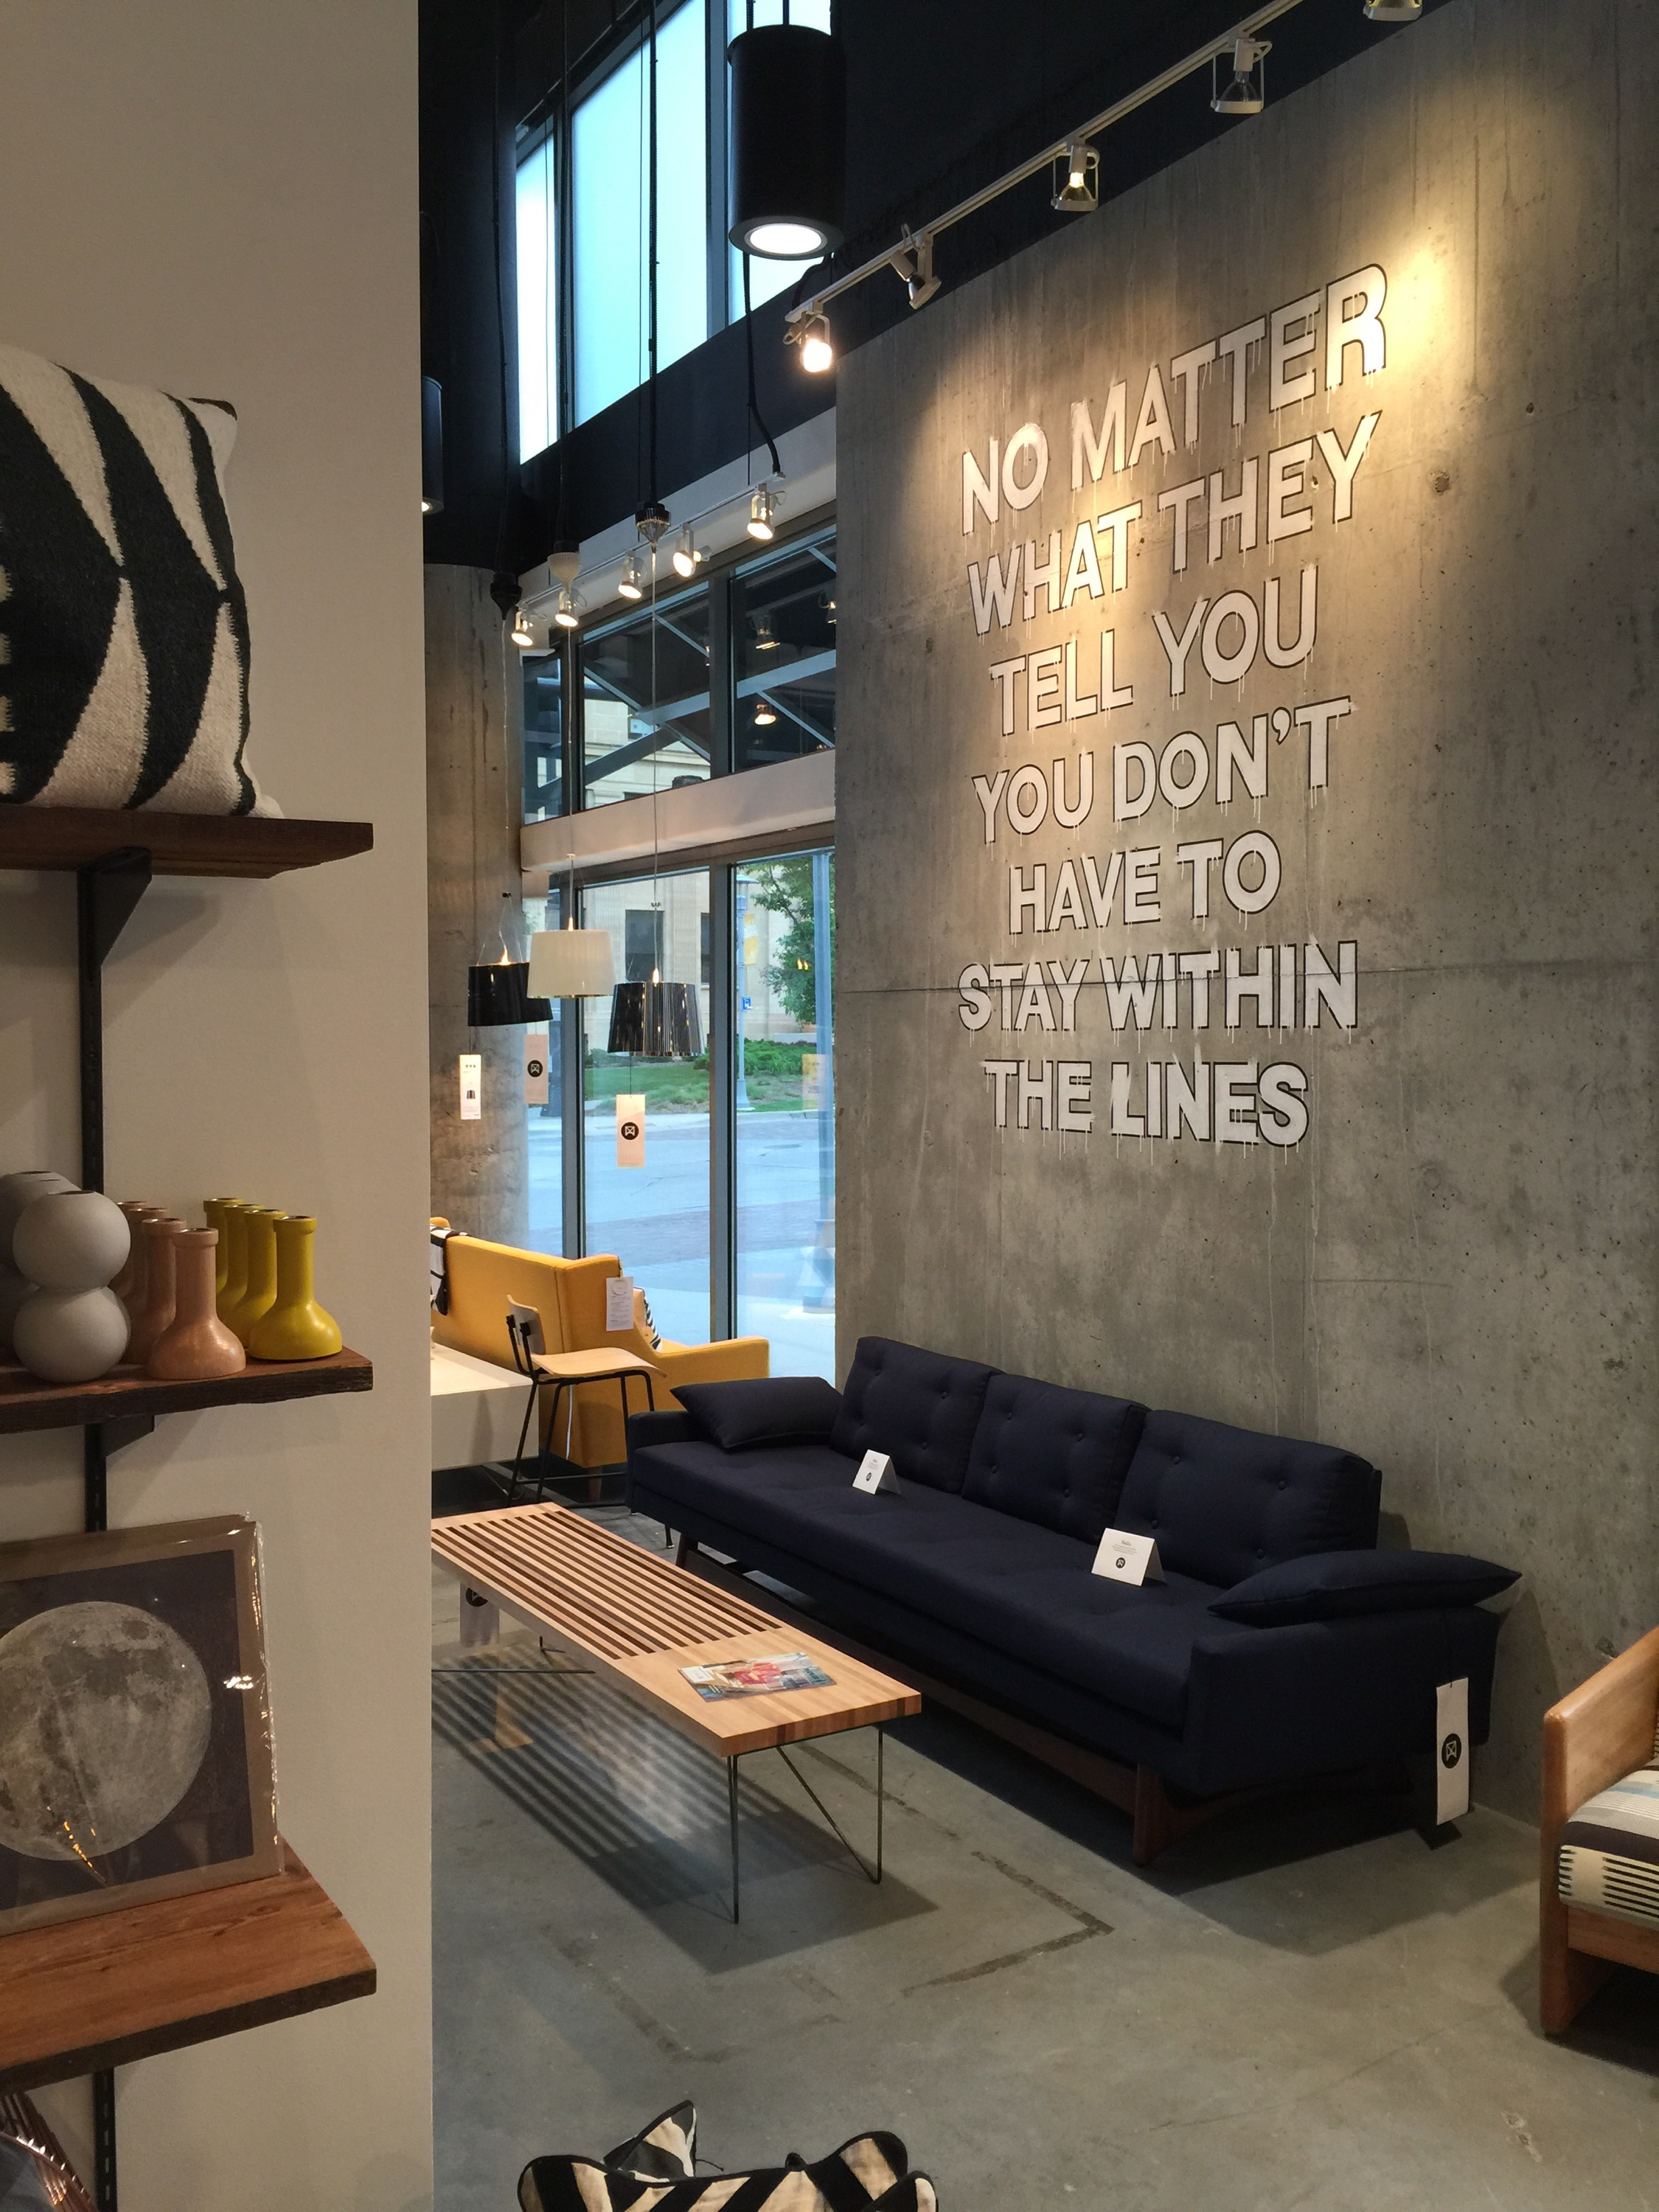 Hutch sells modern rustic and contemporary furniture in midtown omaha toward the entrance of the store this displayed in bold letters on the wall